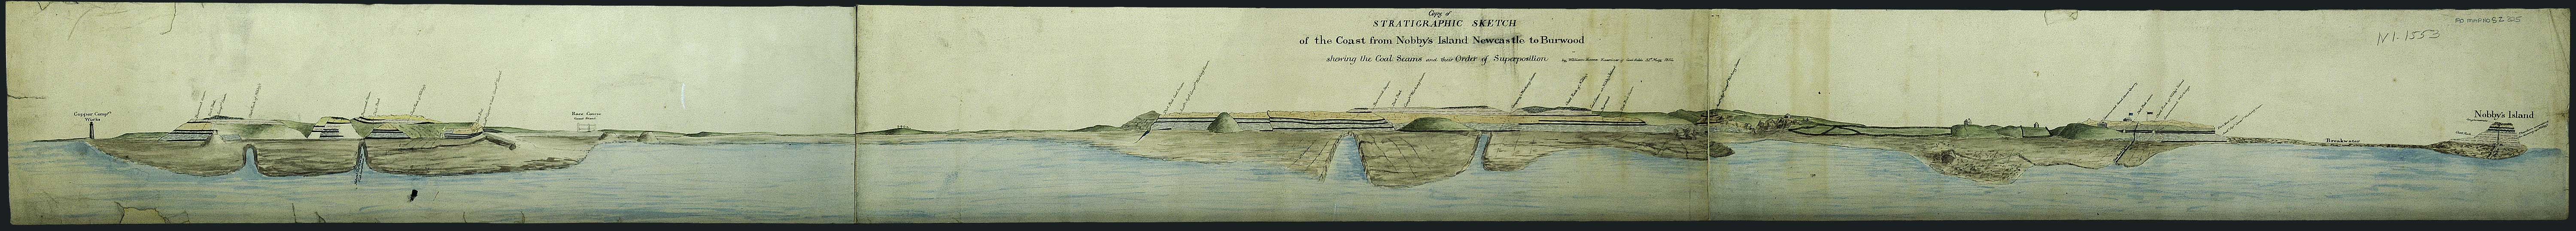 Stratigraphic sketch from Nobby's Island Newcastle to Burwood